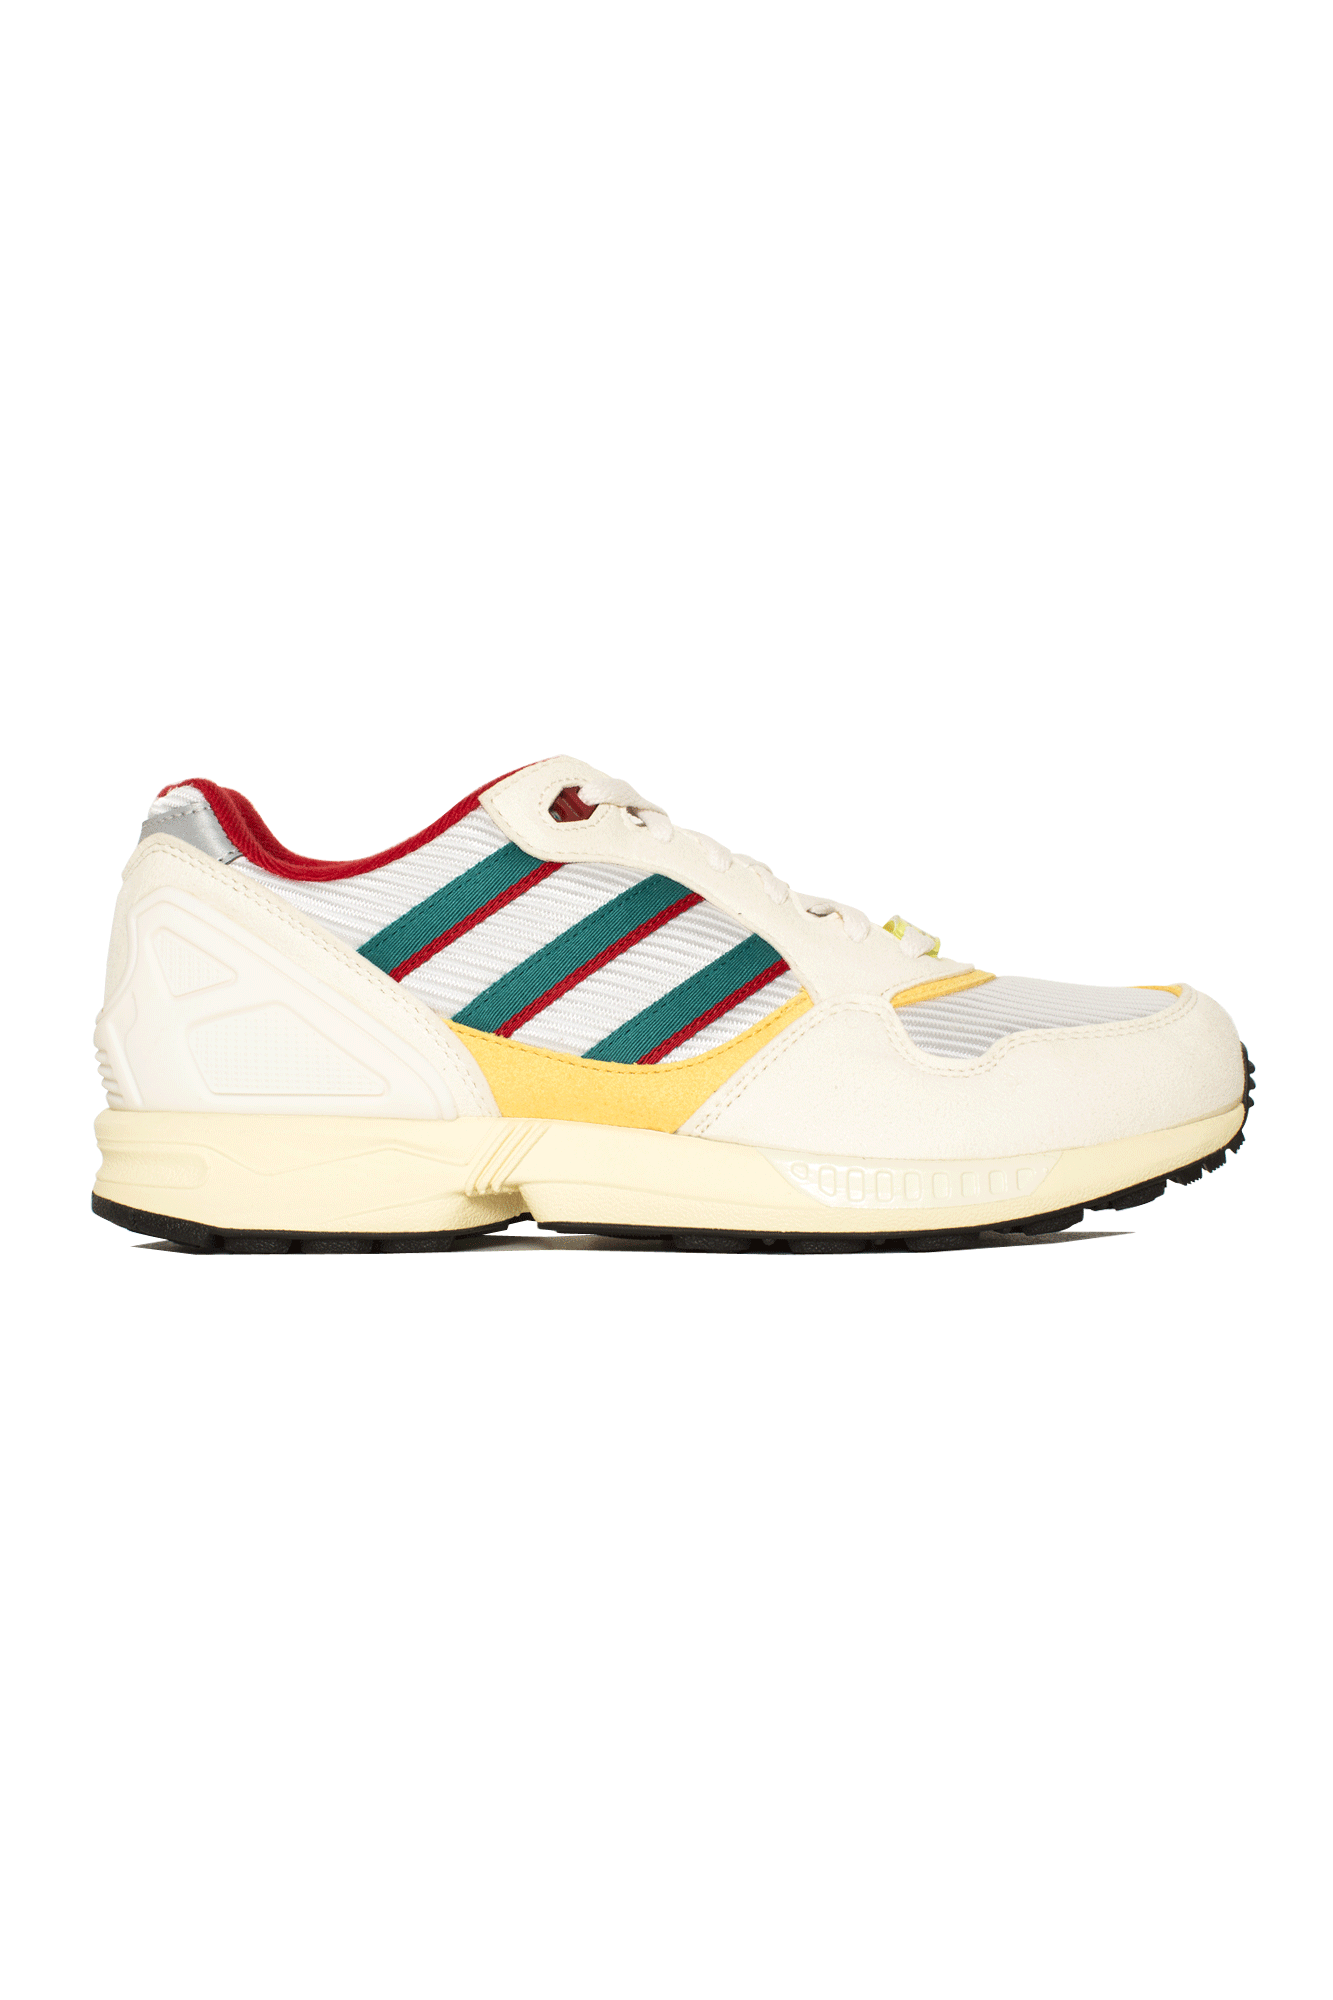 Sneakers Adidas Originals ZX 6000 White - One Block Down